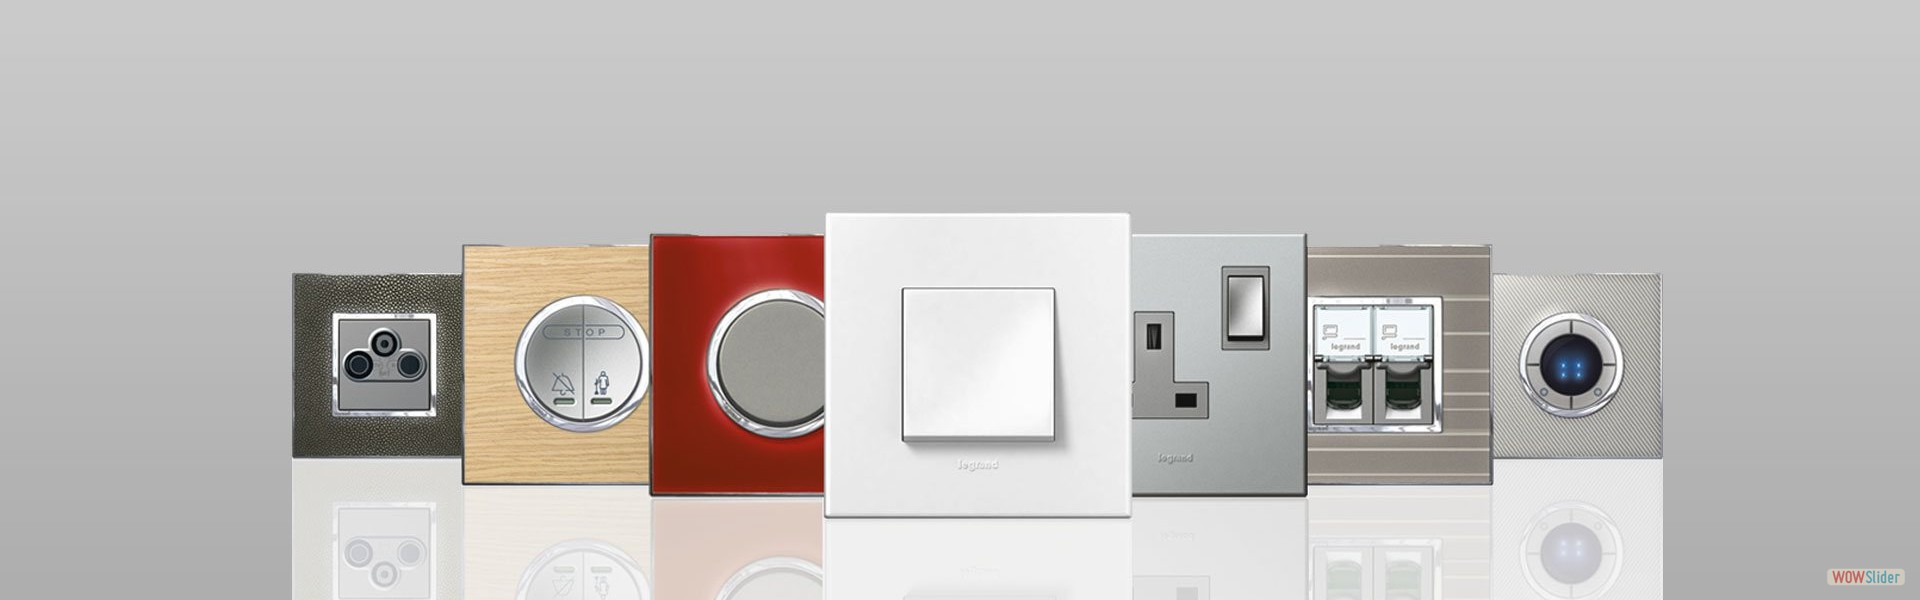 Premium Sockets and Switches at affordable rates